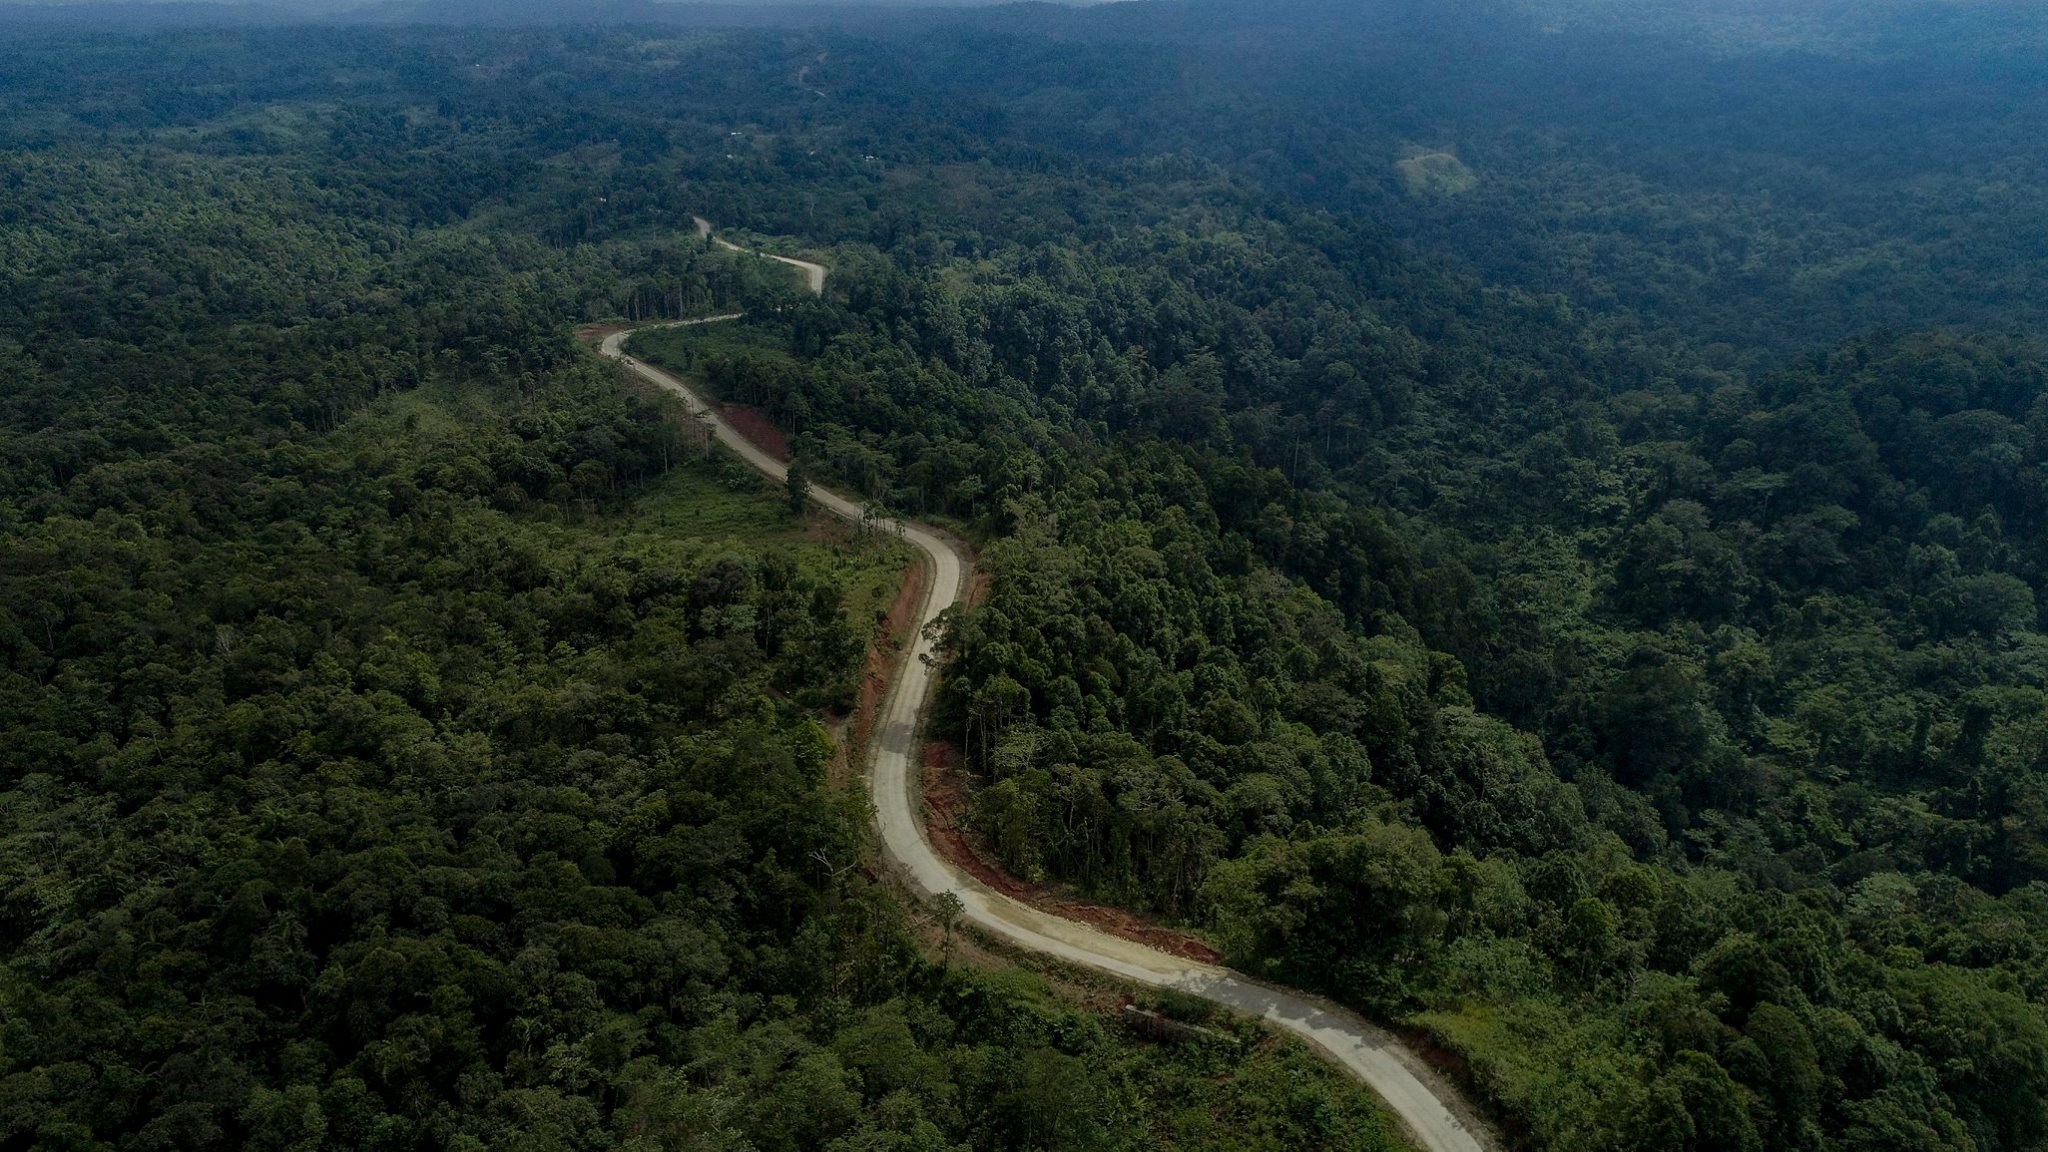 Iligan to Bukidnon road now ready, travel time reduced by 2 hours